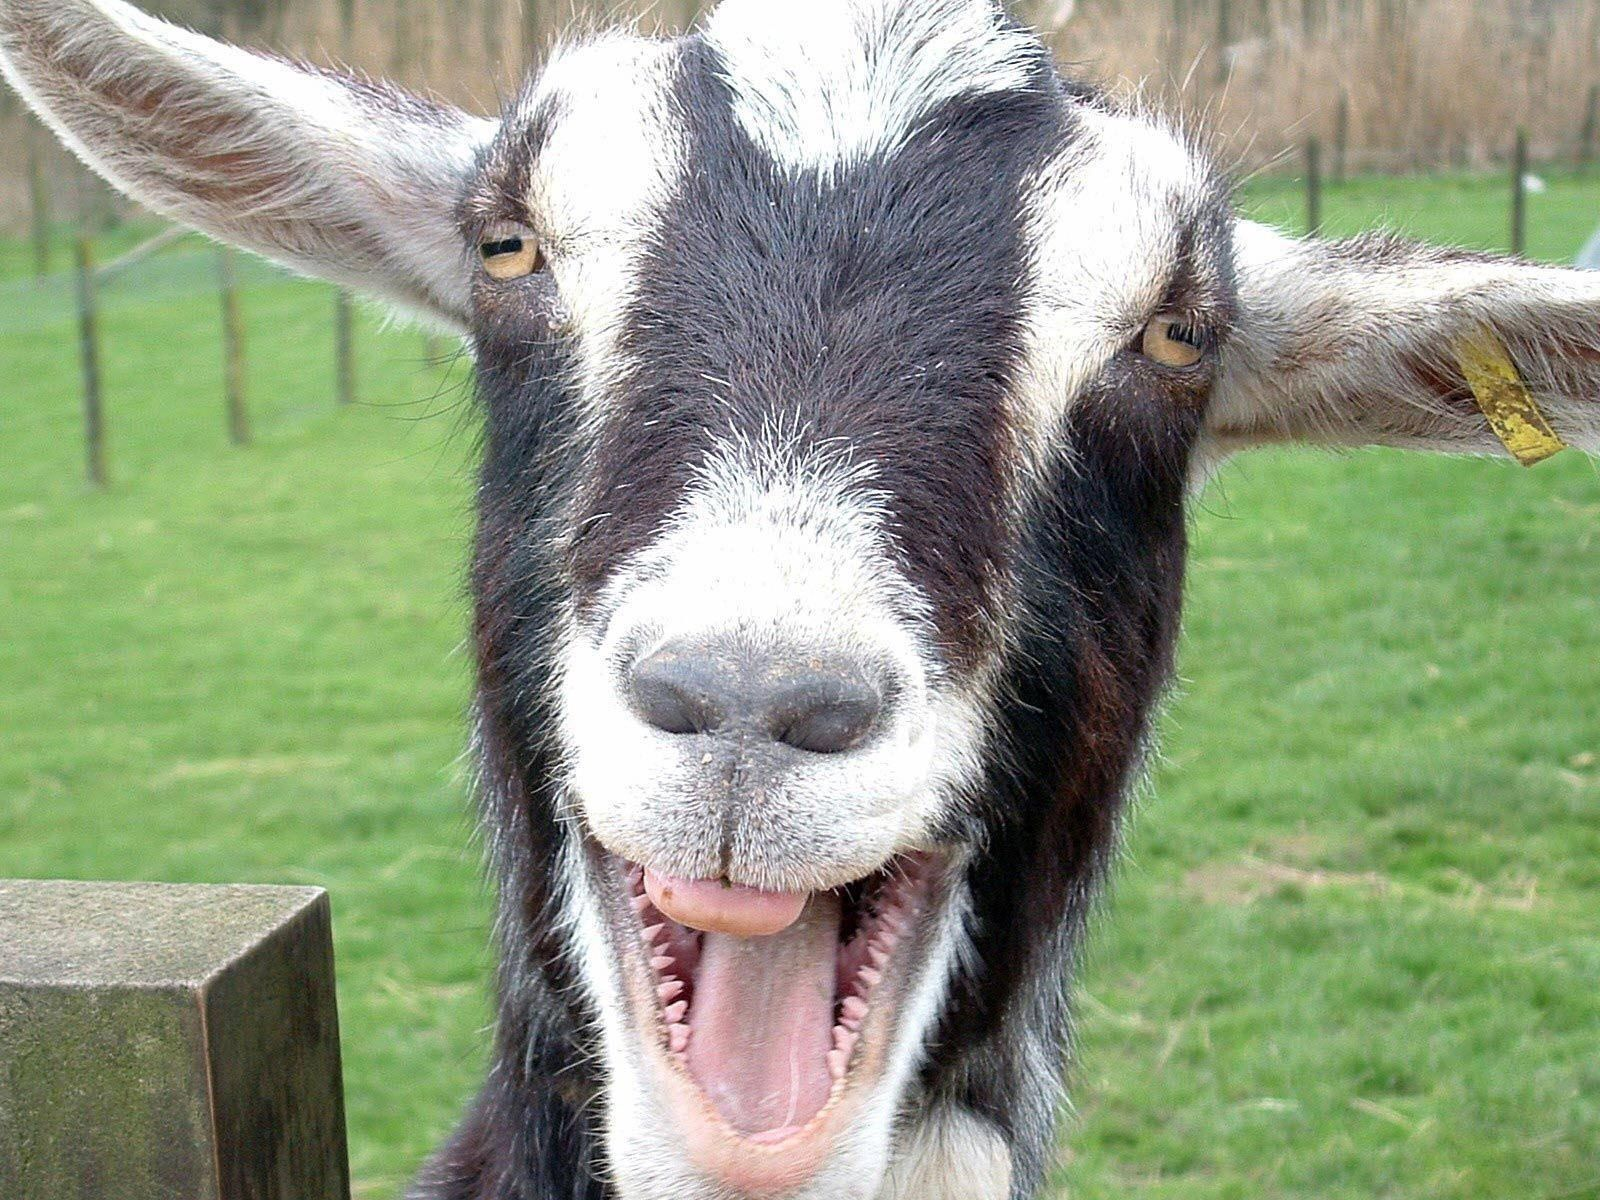 Funny Goat Wallpapers Top Free Funny Goat Backgrounds Wallpaperaccess